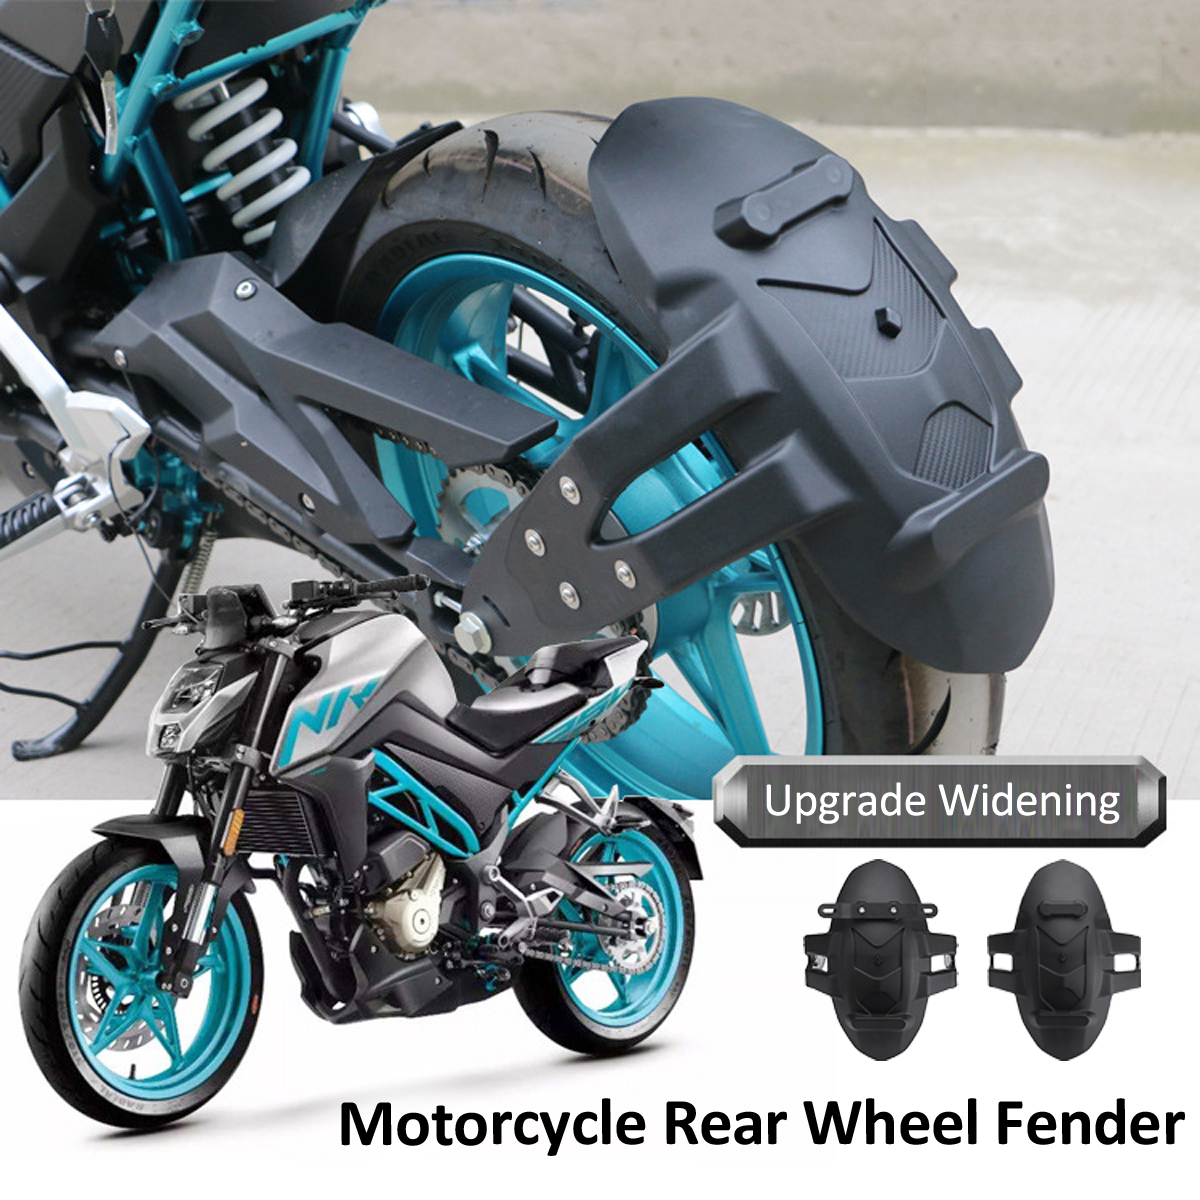 Universal Motorcycle Rear Fenders Flare Mud Flap Mudguard Splash Guard Black Motorcycle Rear Mudguard Fenders Motorcycle Part смартфон apple iphone 6s розовое золото 4 7 32 гб wi fi gps 3g lte nfc mn122ru a